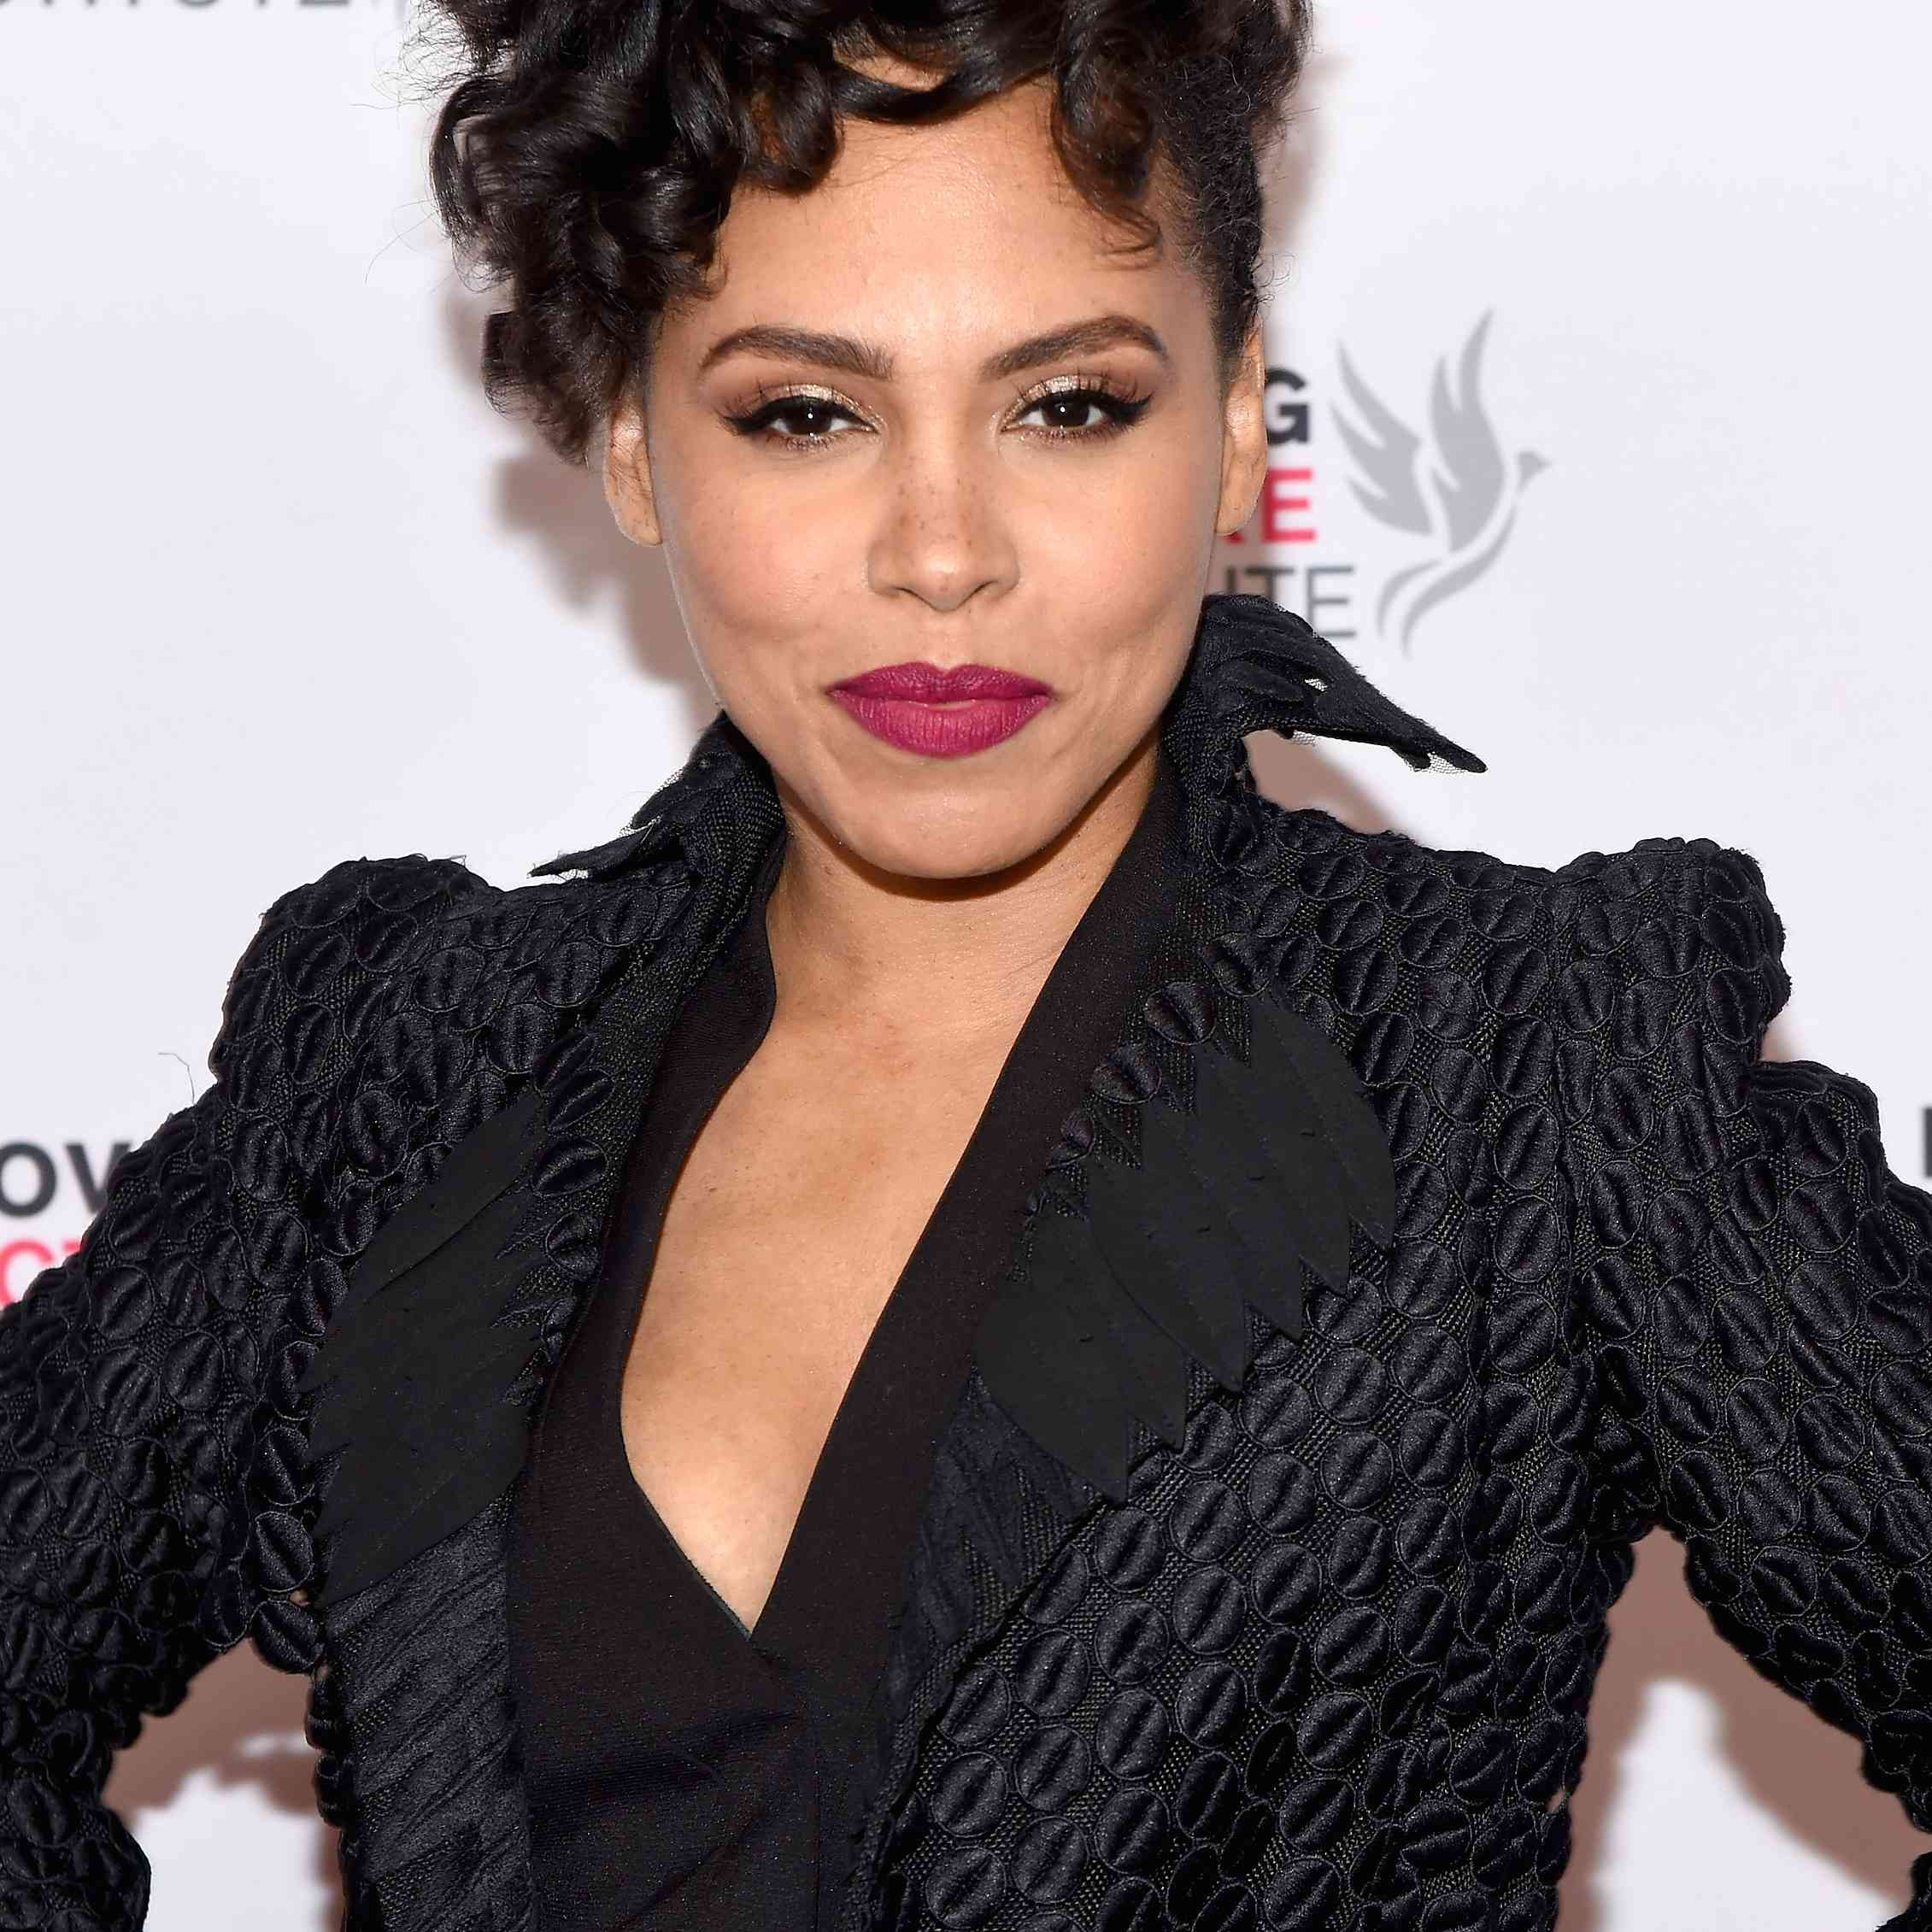 Amirah Vann posing on the red carpet of the premiere of